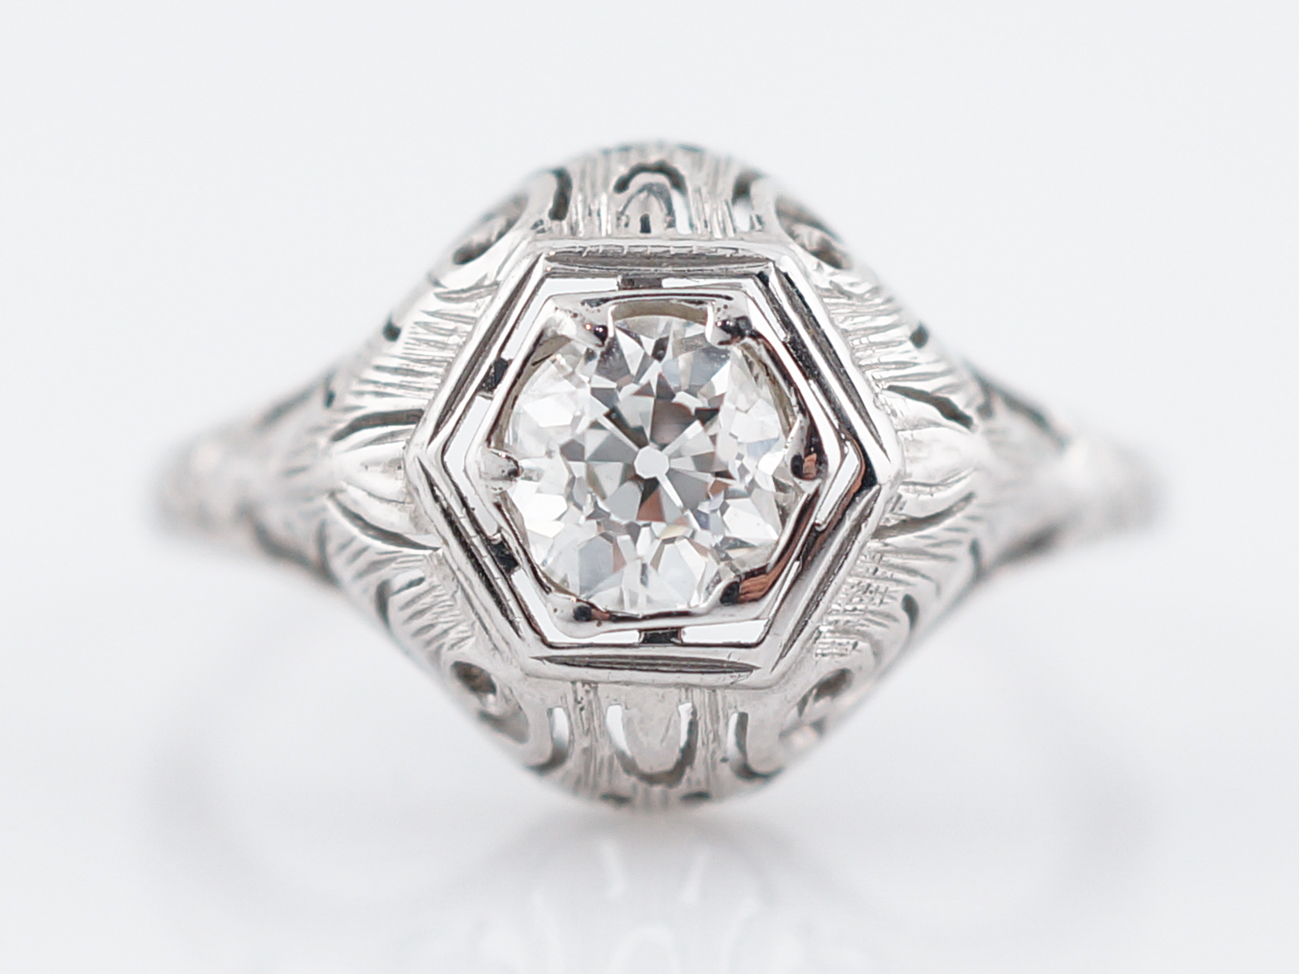 jewelry engagement rings sold estate circa and graceful pin antique ring halo a edwardian diamond style stunning cheap by